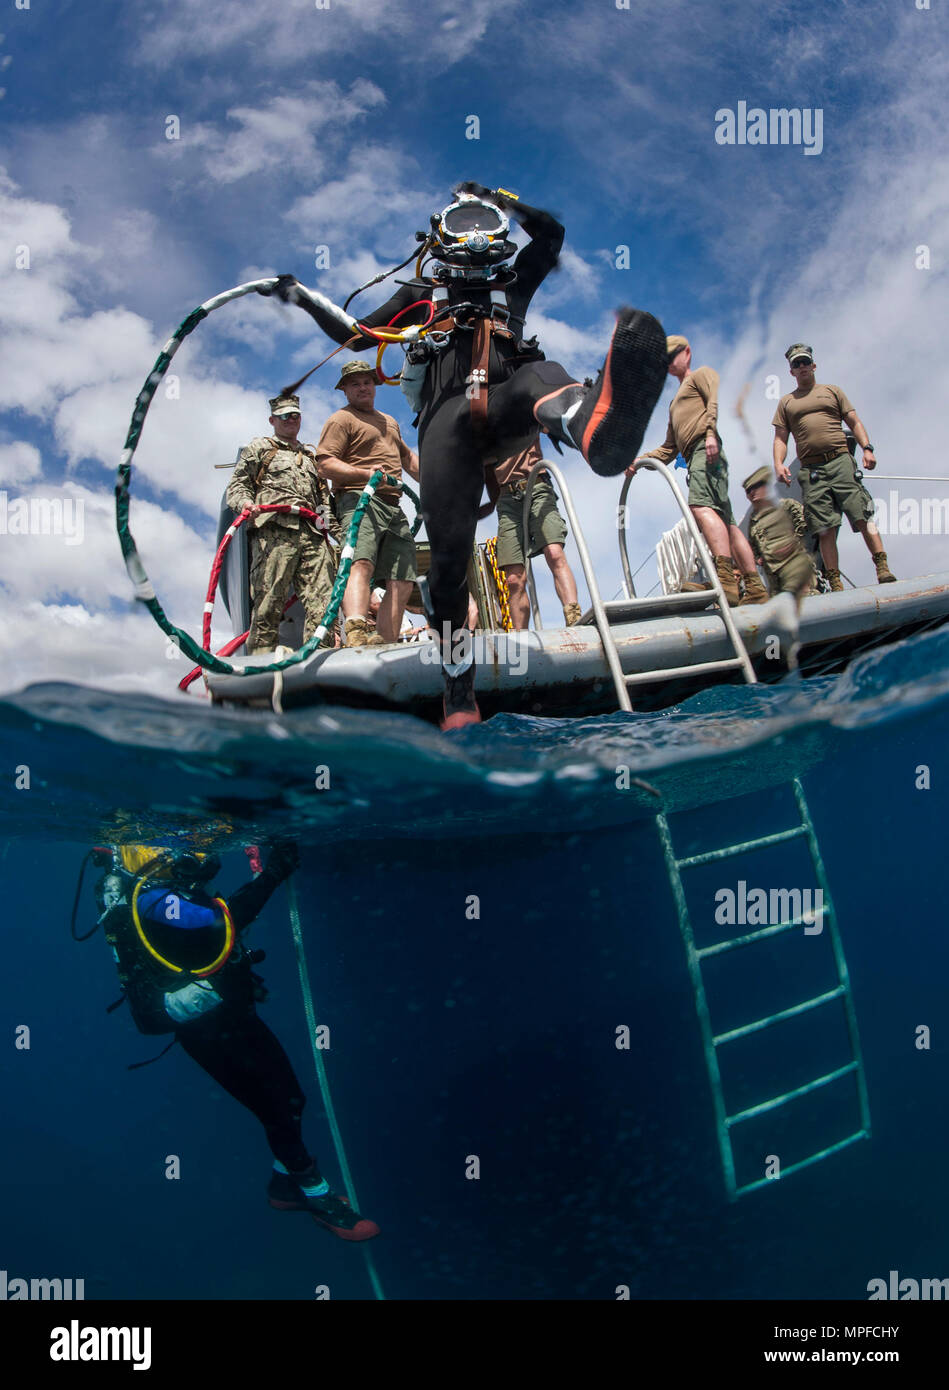 Seabees, assigned to Underwater Construction Team (UCT) 1, conduct surface supplied diving operations during diver-qualification training off the coast of Naval Station Guantanamo Bay, Feb. 12, 2017. UCT 1 provides a capability for construction, inspection, repair and maintenance of ocean facilities in support of Naval operations. (U.S. Navy Combat Camera photo by Mass Communication Specialist 2nd Class Sean Furey) Stock Photo